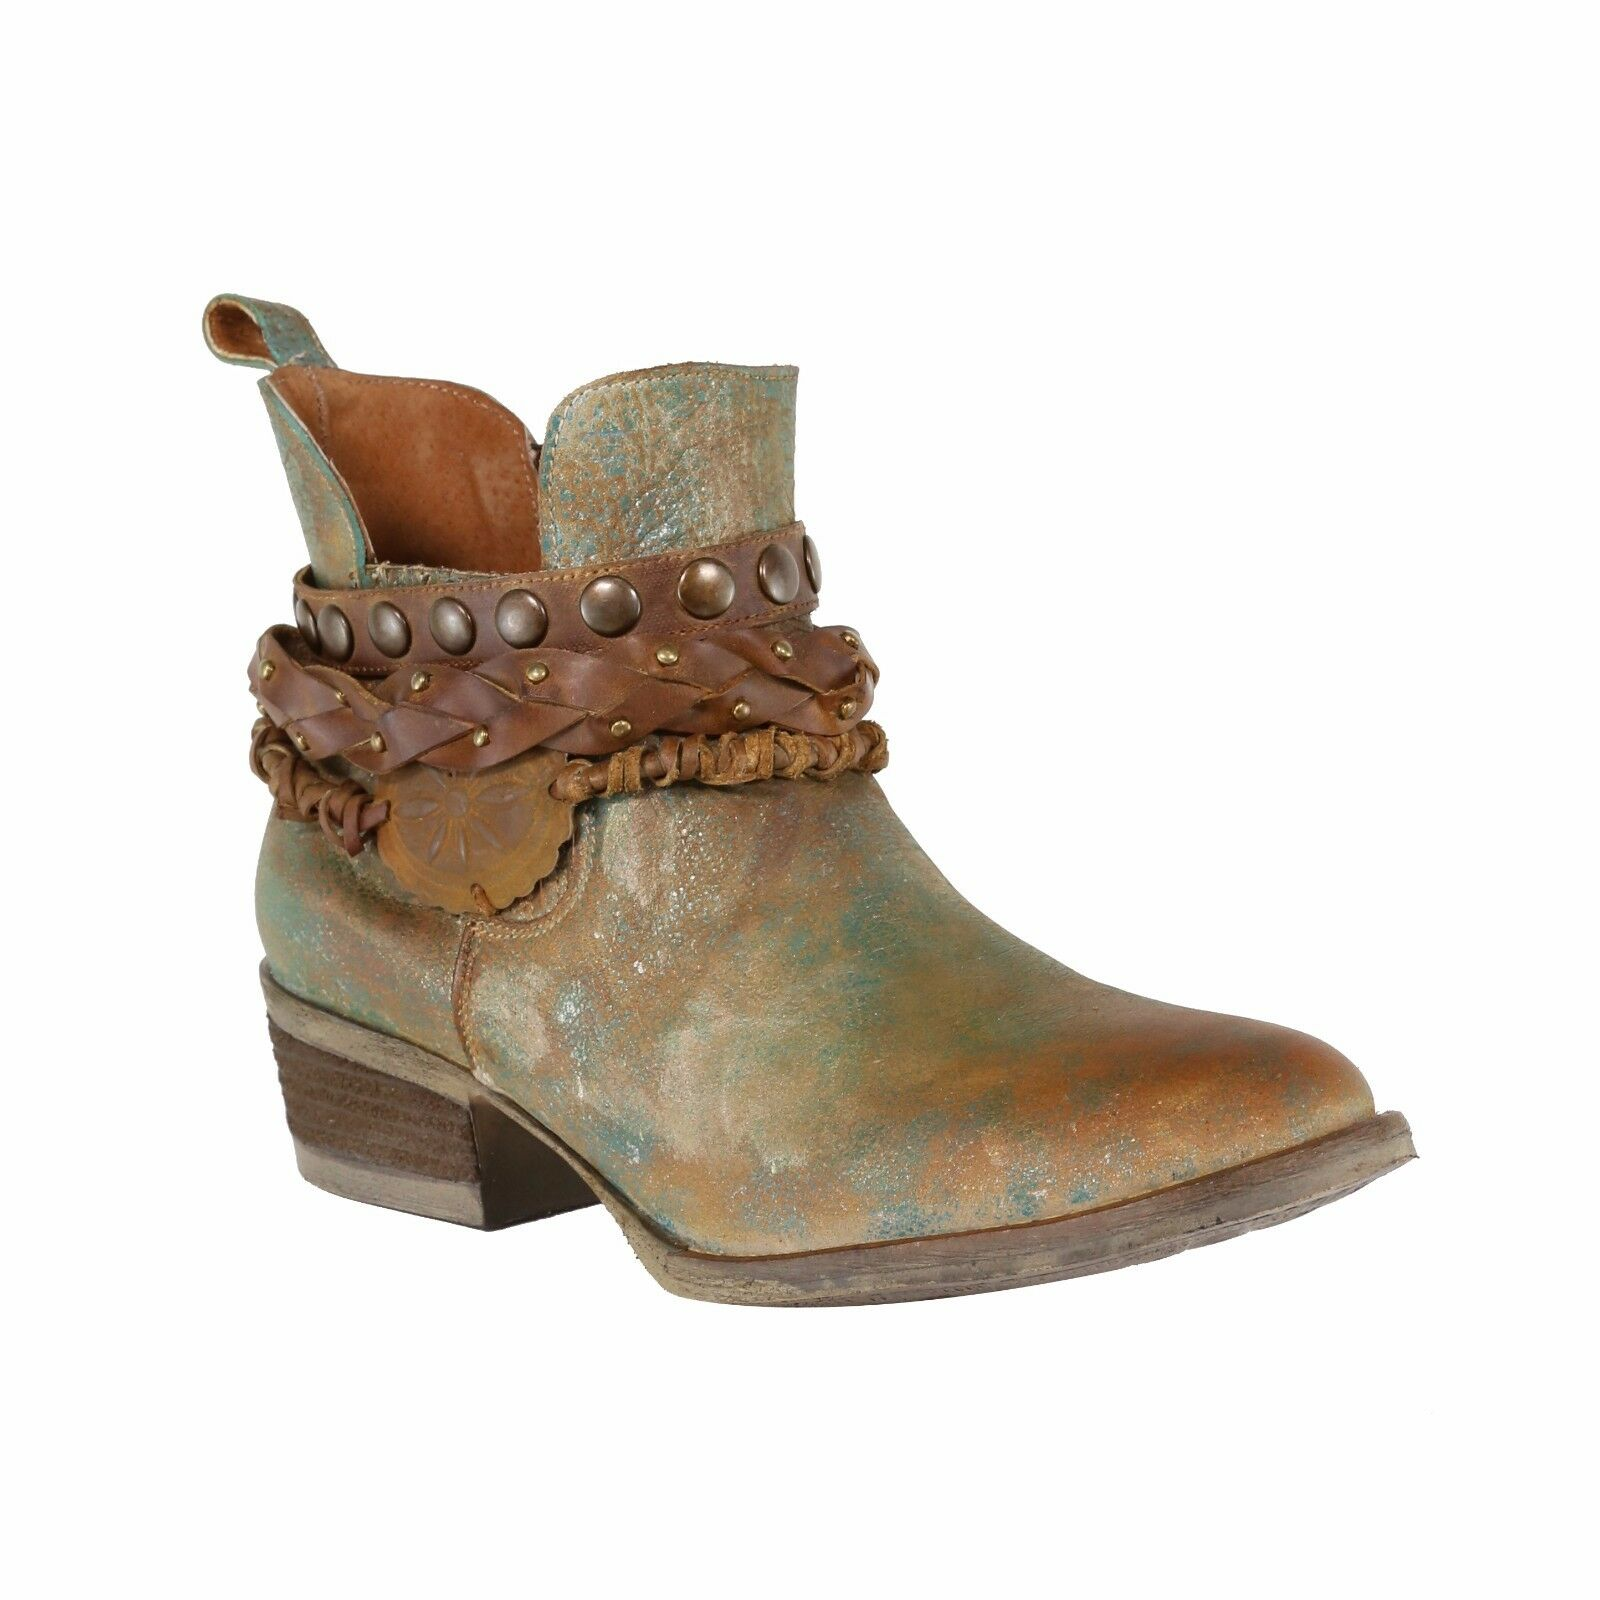 Circle G by Corral Ladies Green Harness & Stud Shortie Boots Q5002